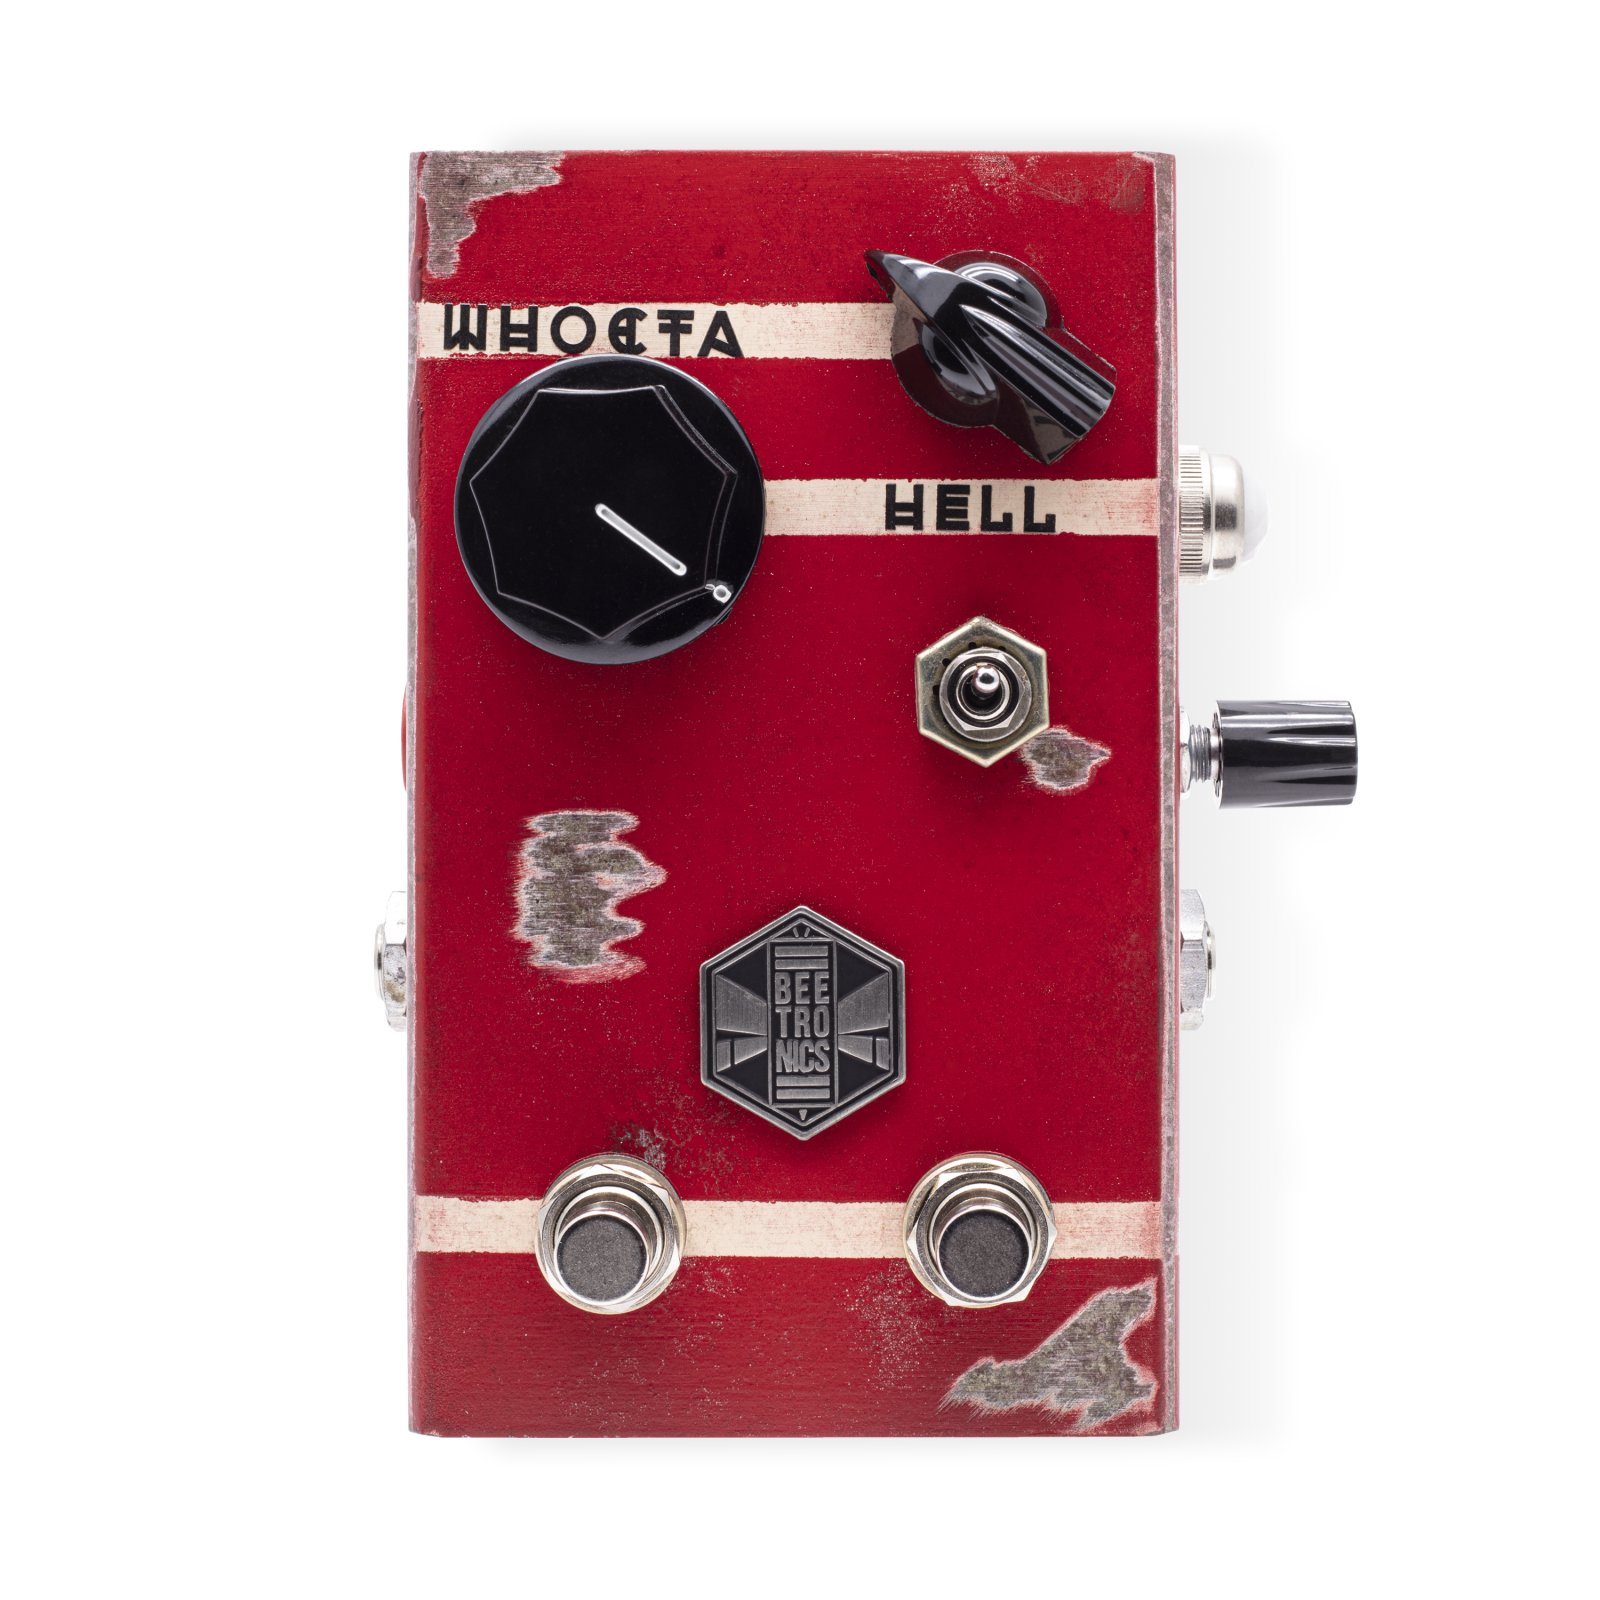 Beetronics Whoctahell Low Octave Fuzz